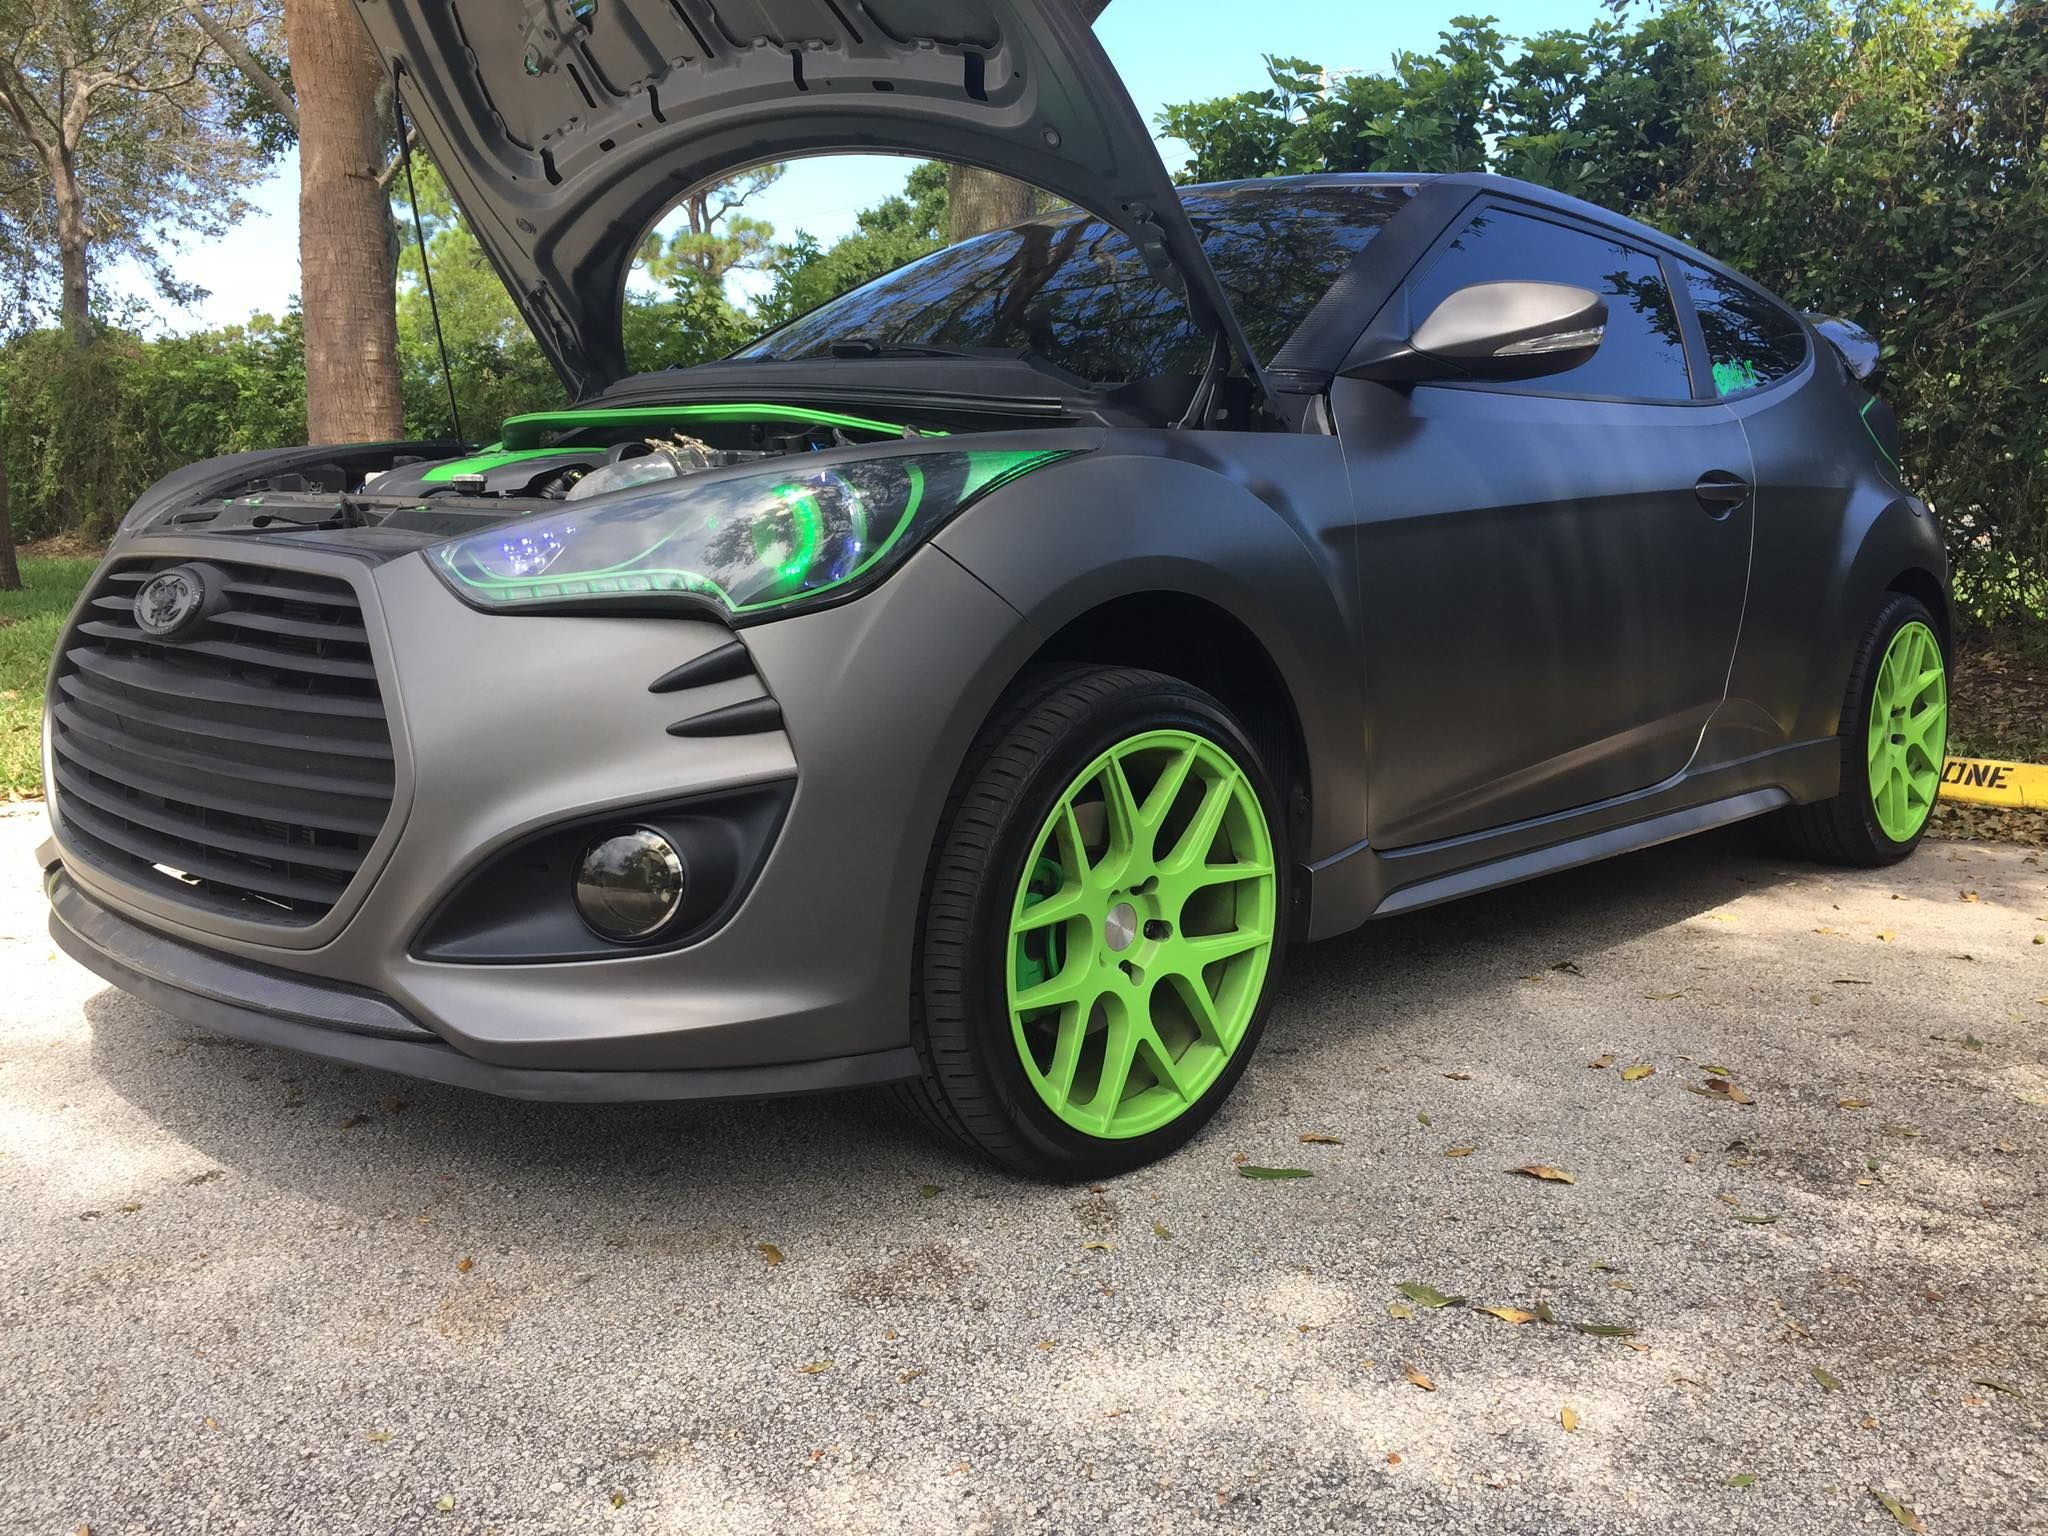 Pin By Vettecool On Veloster Hyundai Veloster Veloster Turbo Dream Cars